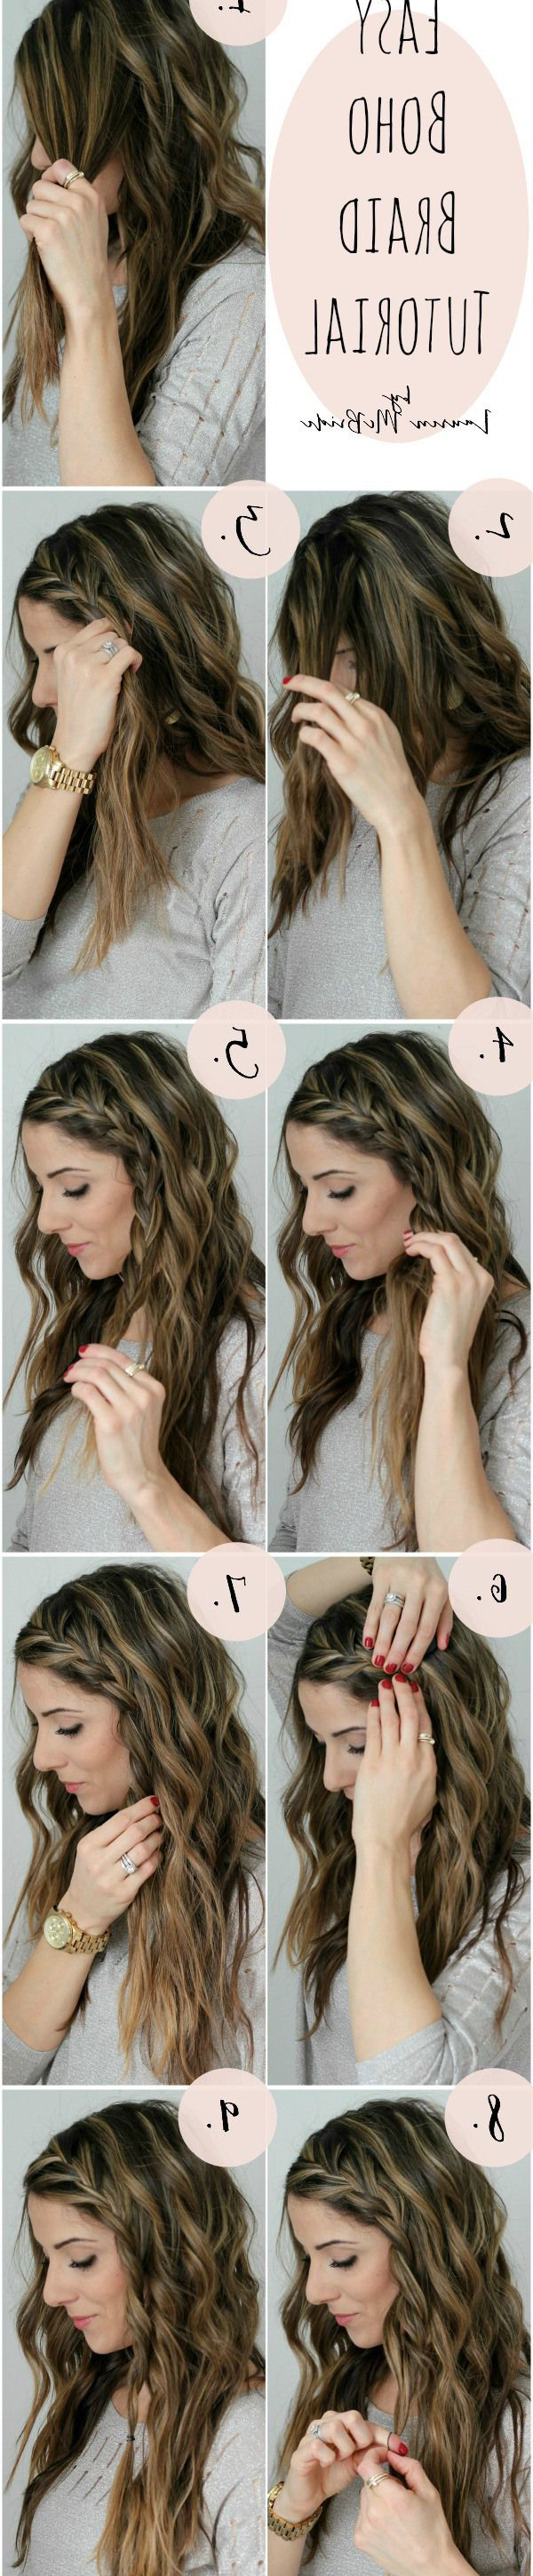 15 Simple But Cute Graduation Hairstyles To Wear Under Your Cap Throughout Hairstyles For Short Hair For Graduation (View 2 of 25)